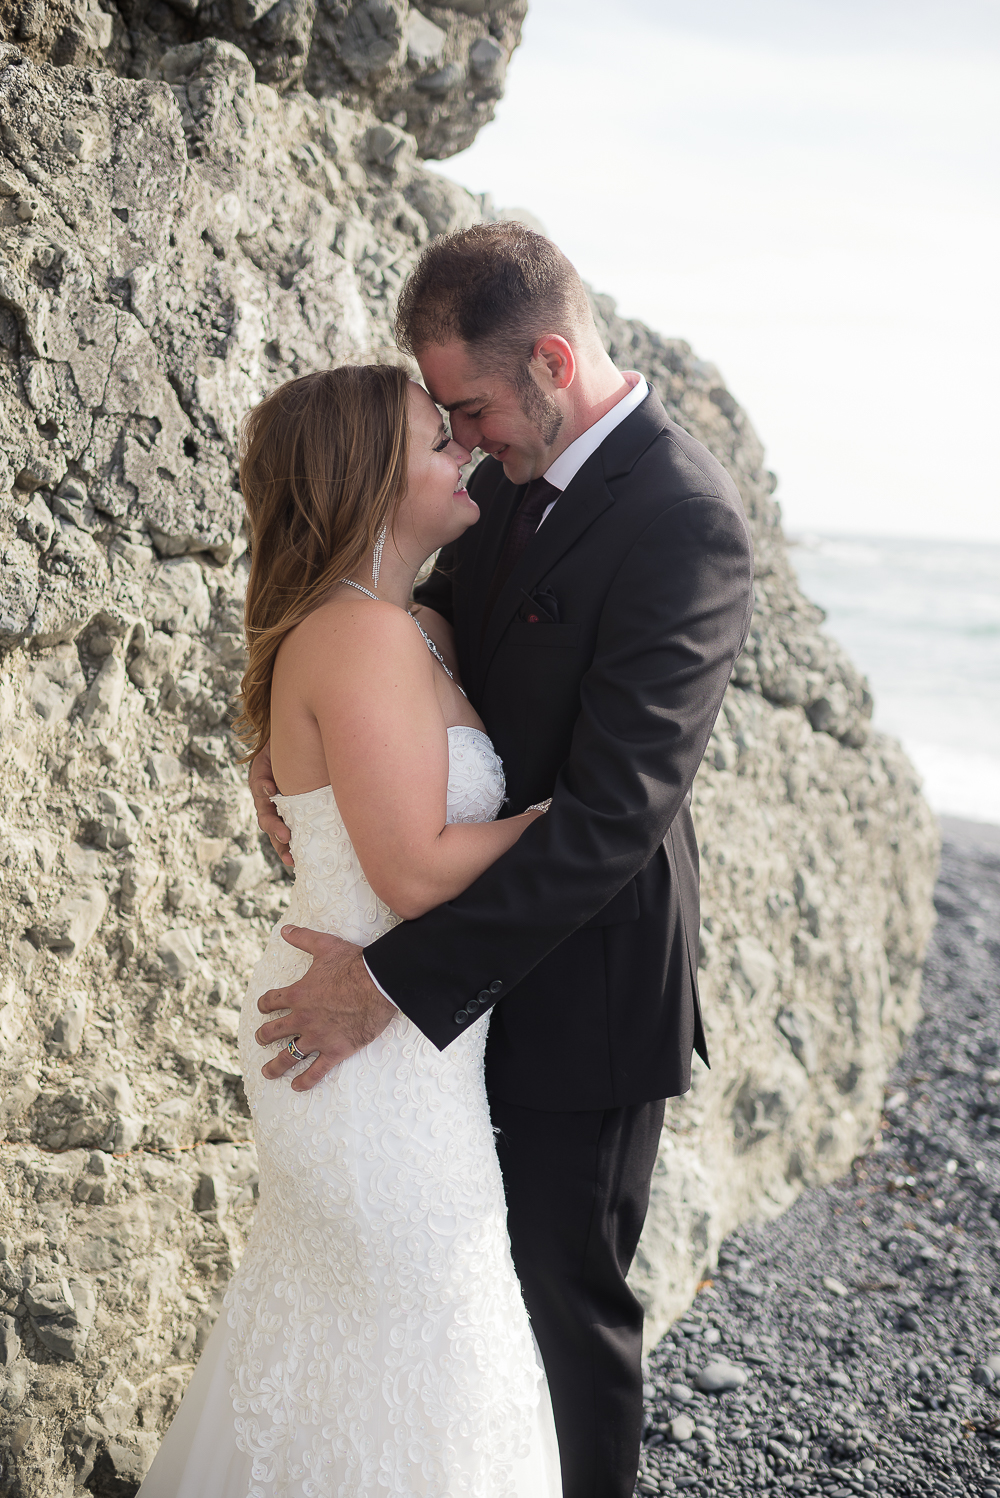 Shelter Cove-Intimate Destination beach Wedding-Parky's Pics Photography-Humboldt County_-45.jpg